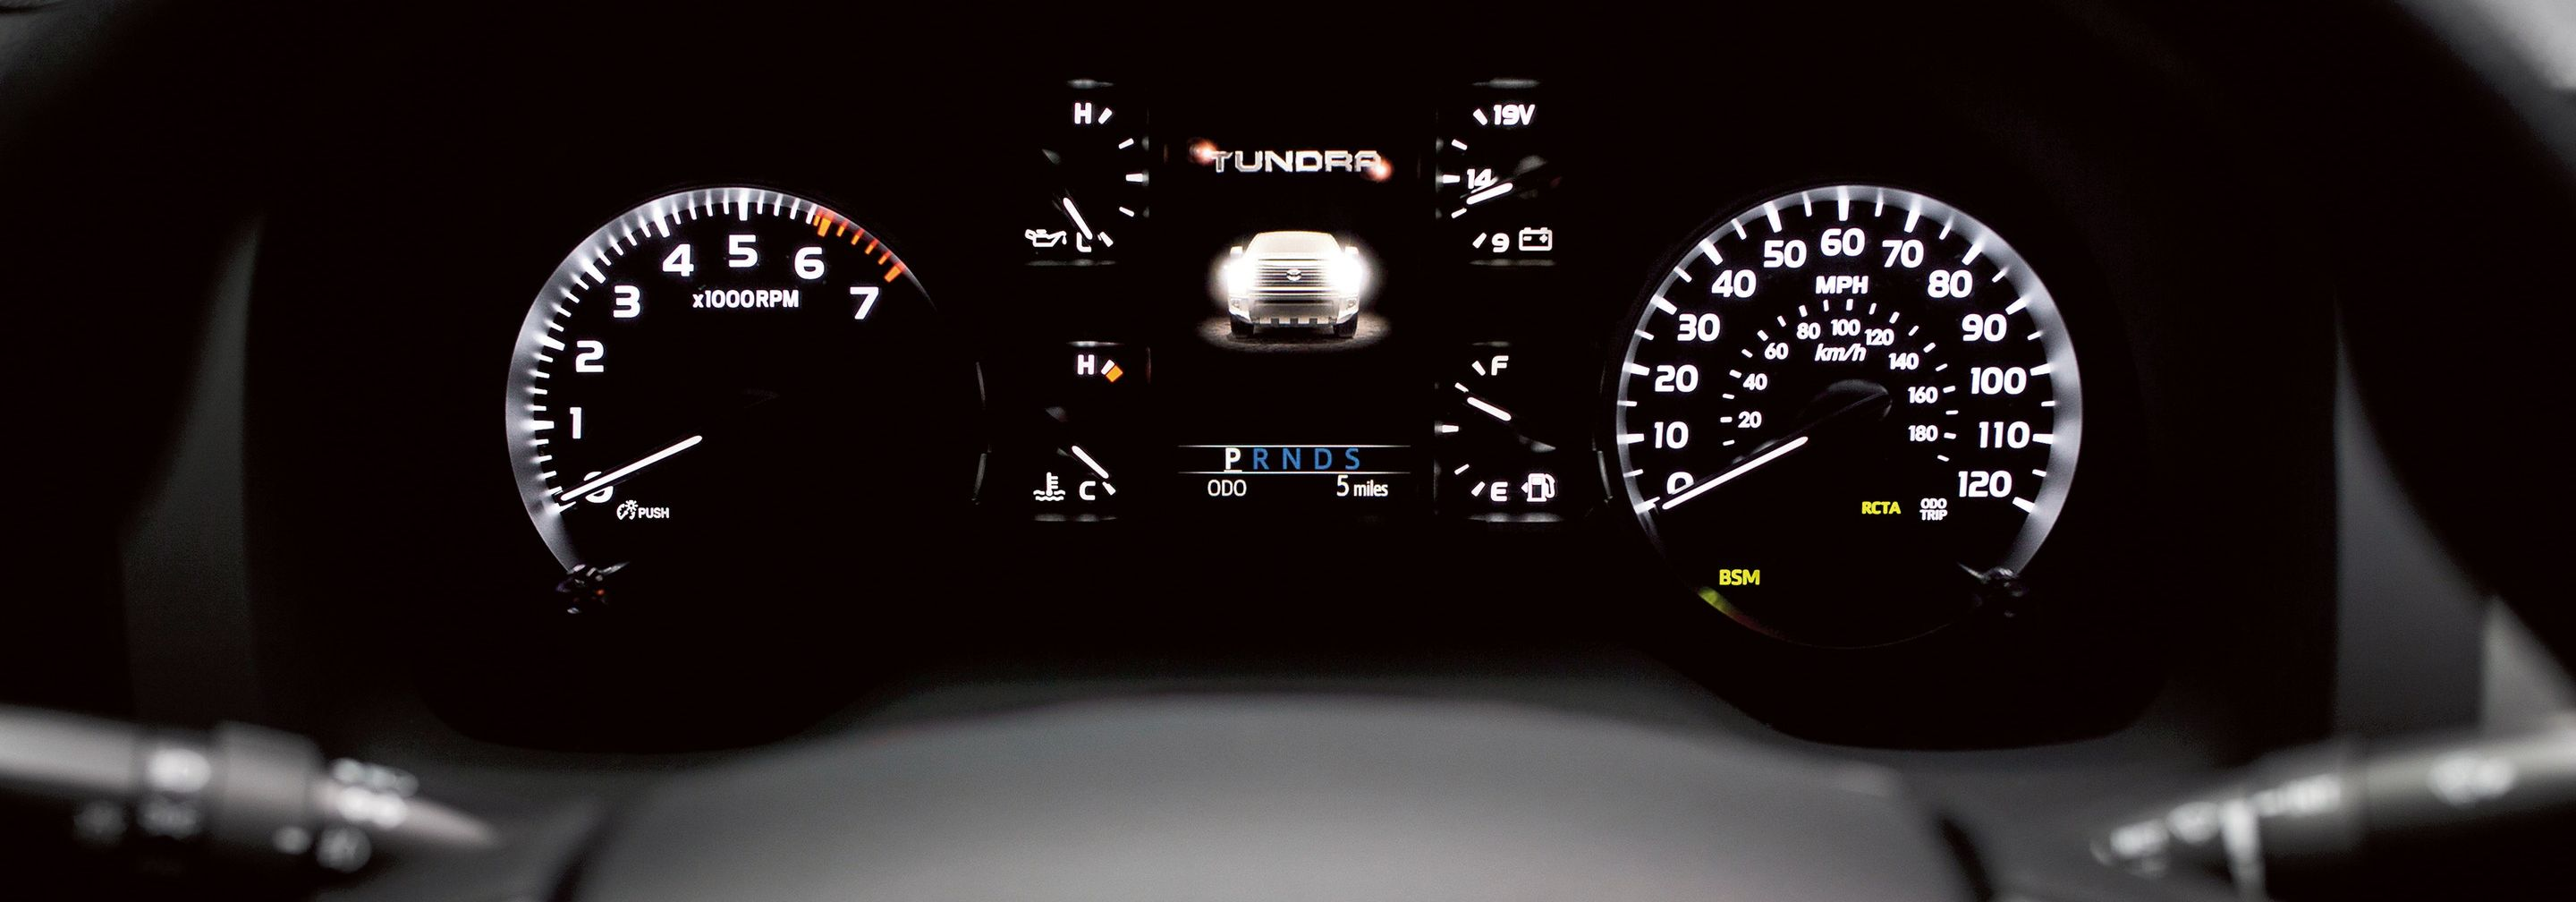 Instrument Cluster of the 2019 Tundra